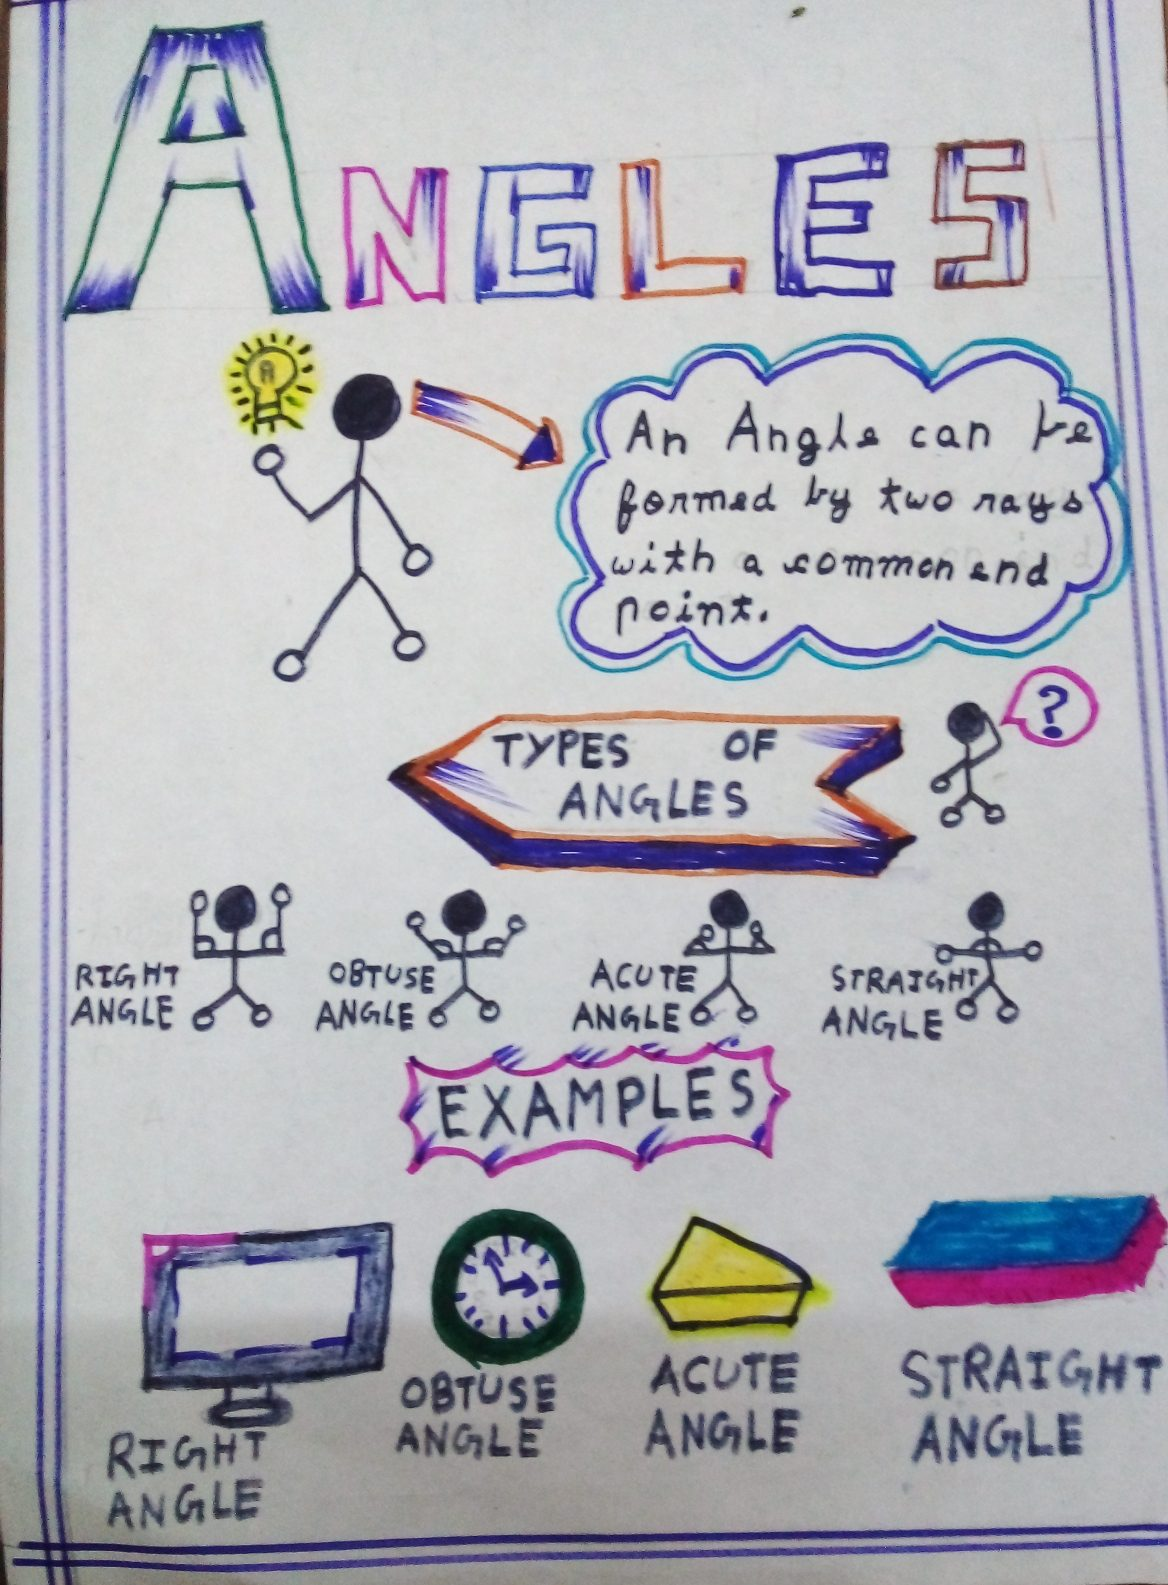 Image depicting Angles